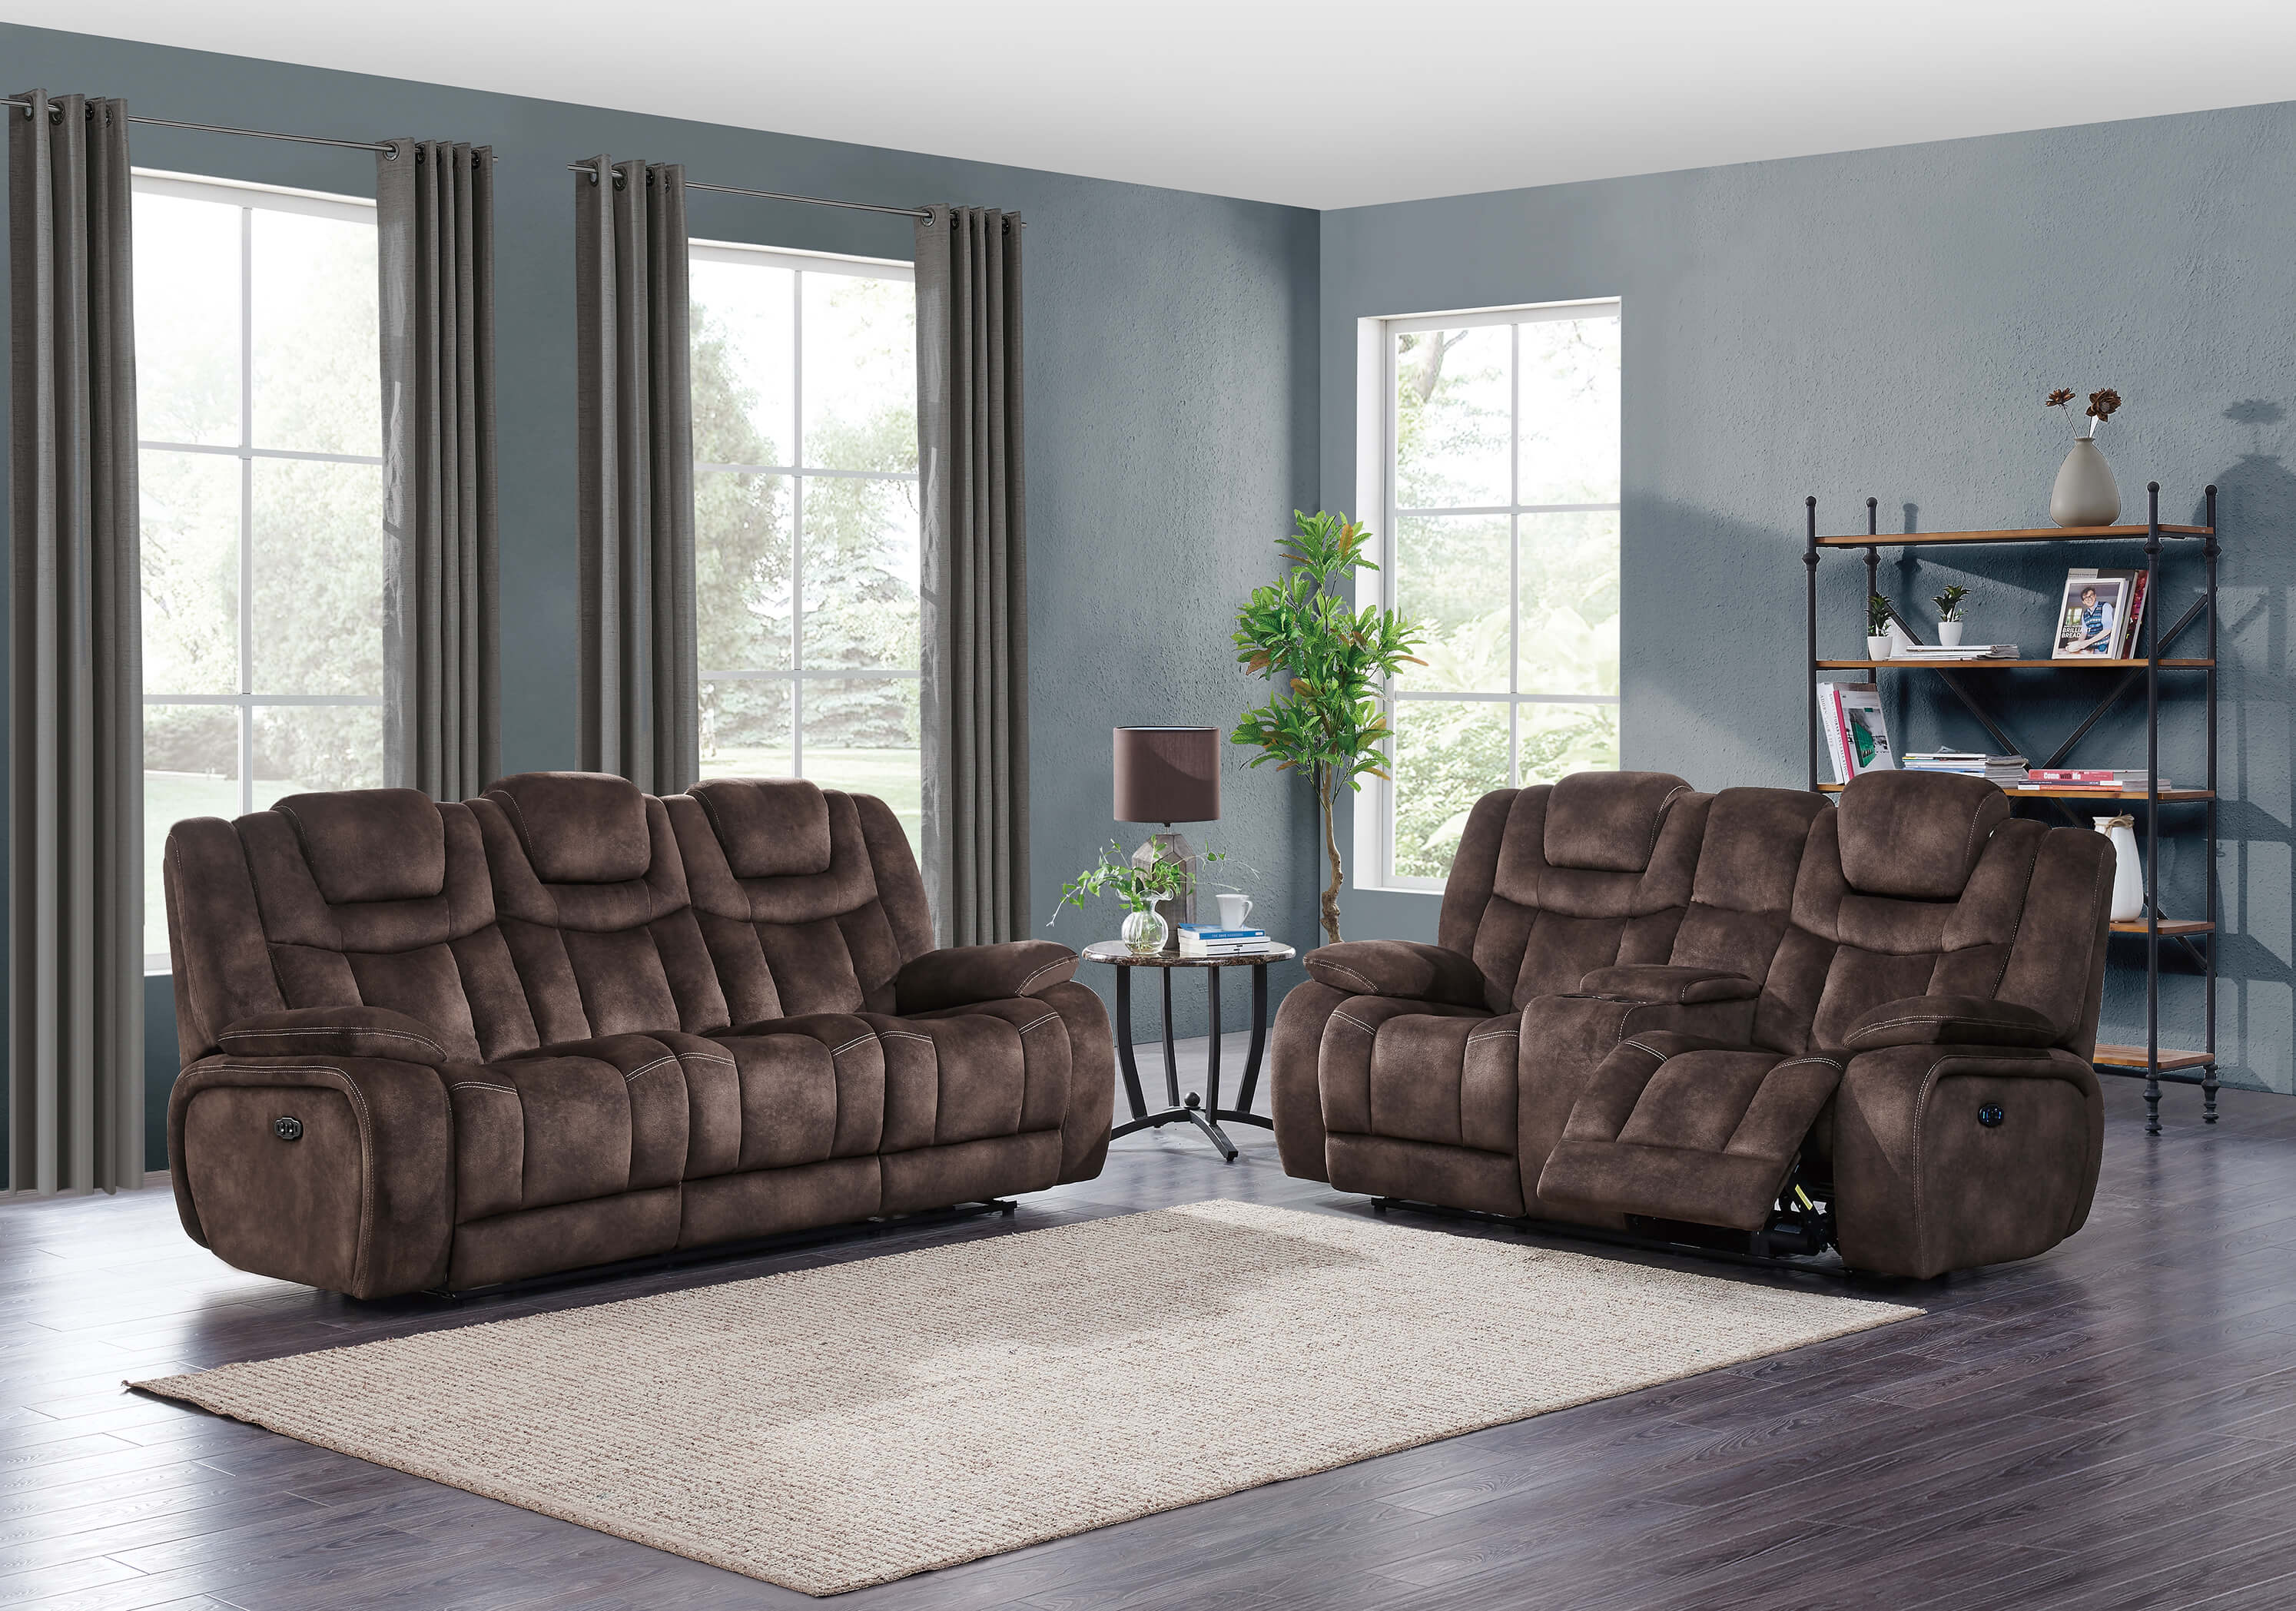 Fantastic U1706 Night Range Chocolate Power Reclining Sofa And Loveseat Set Andrewgaddart Wooden Chair Designs For Living Room Andrewgaddartcom